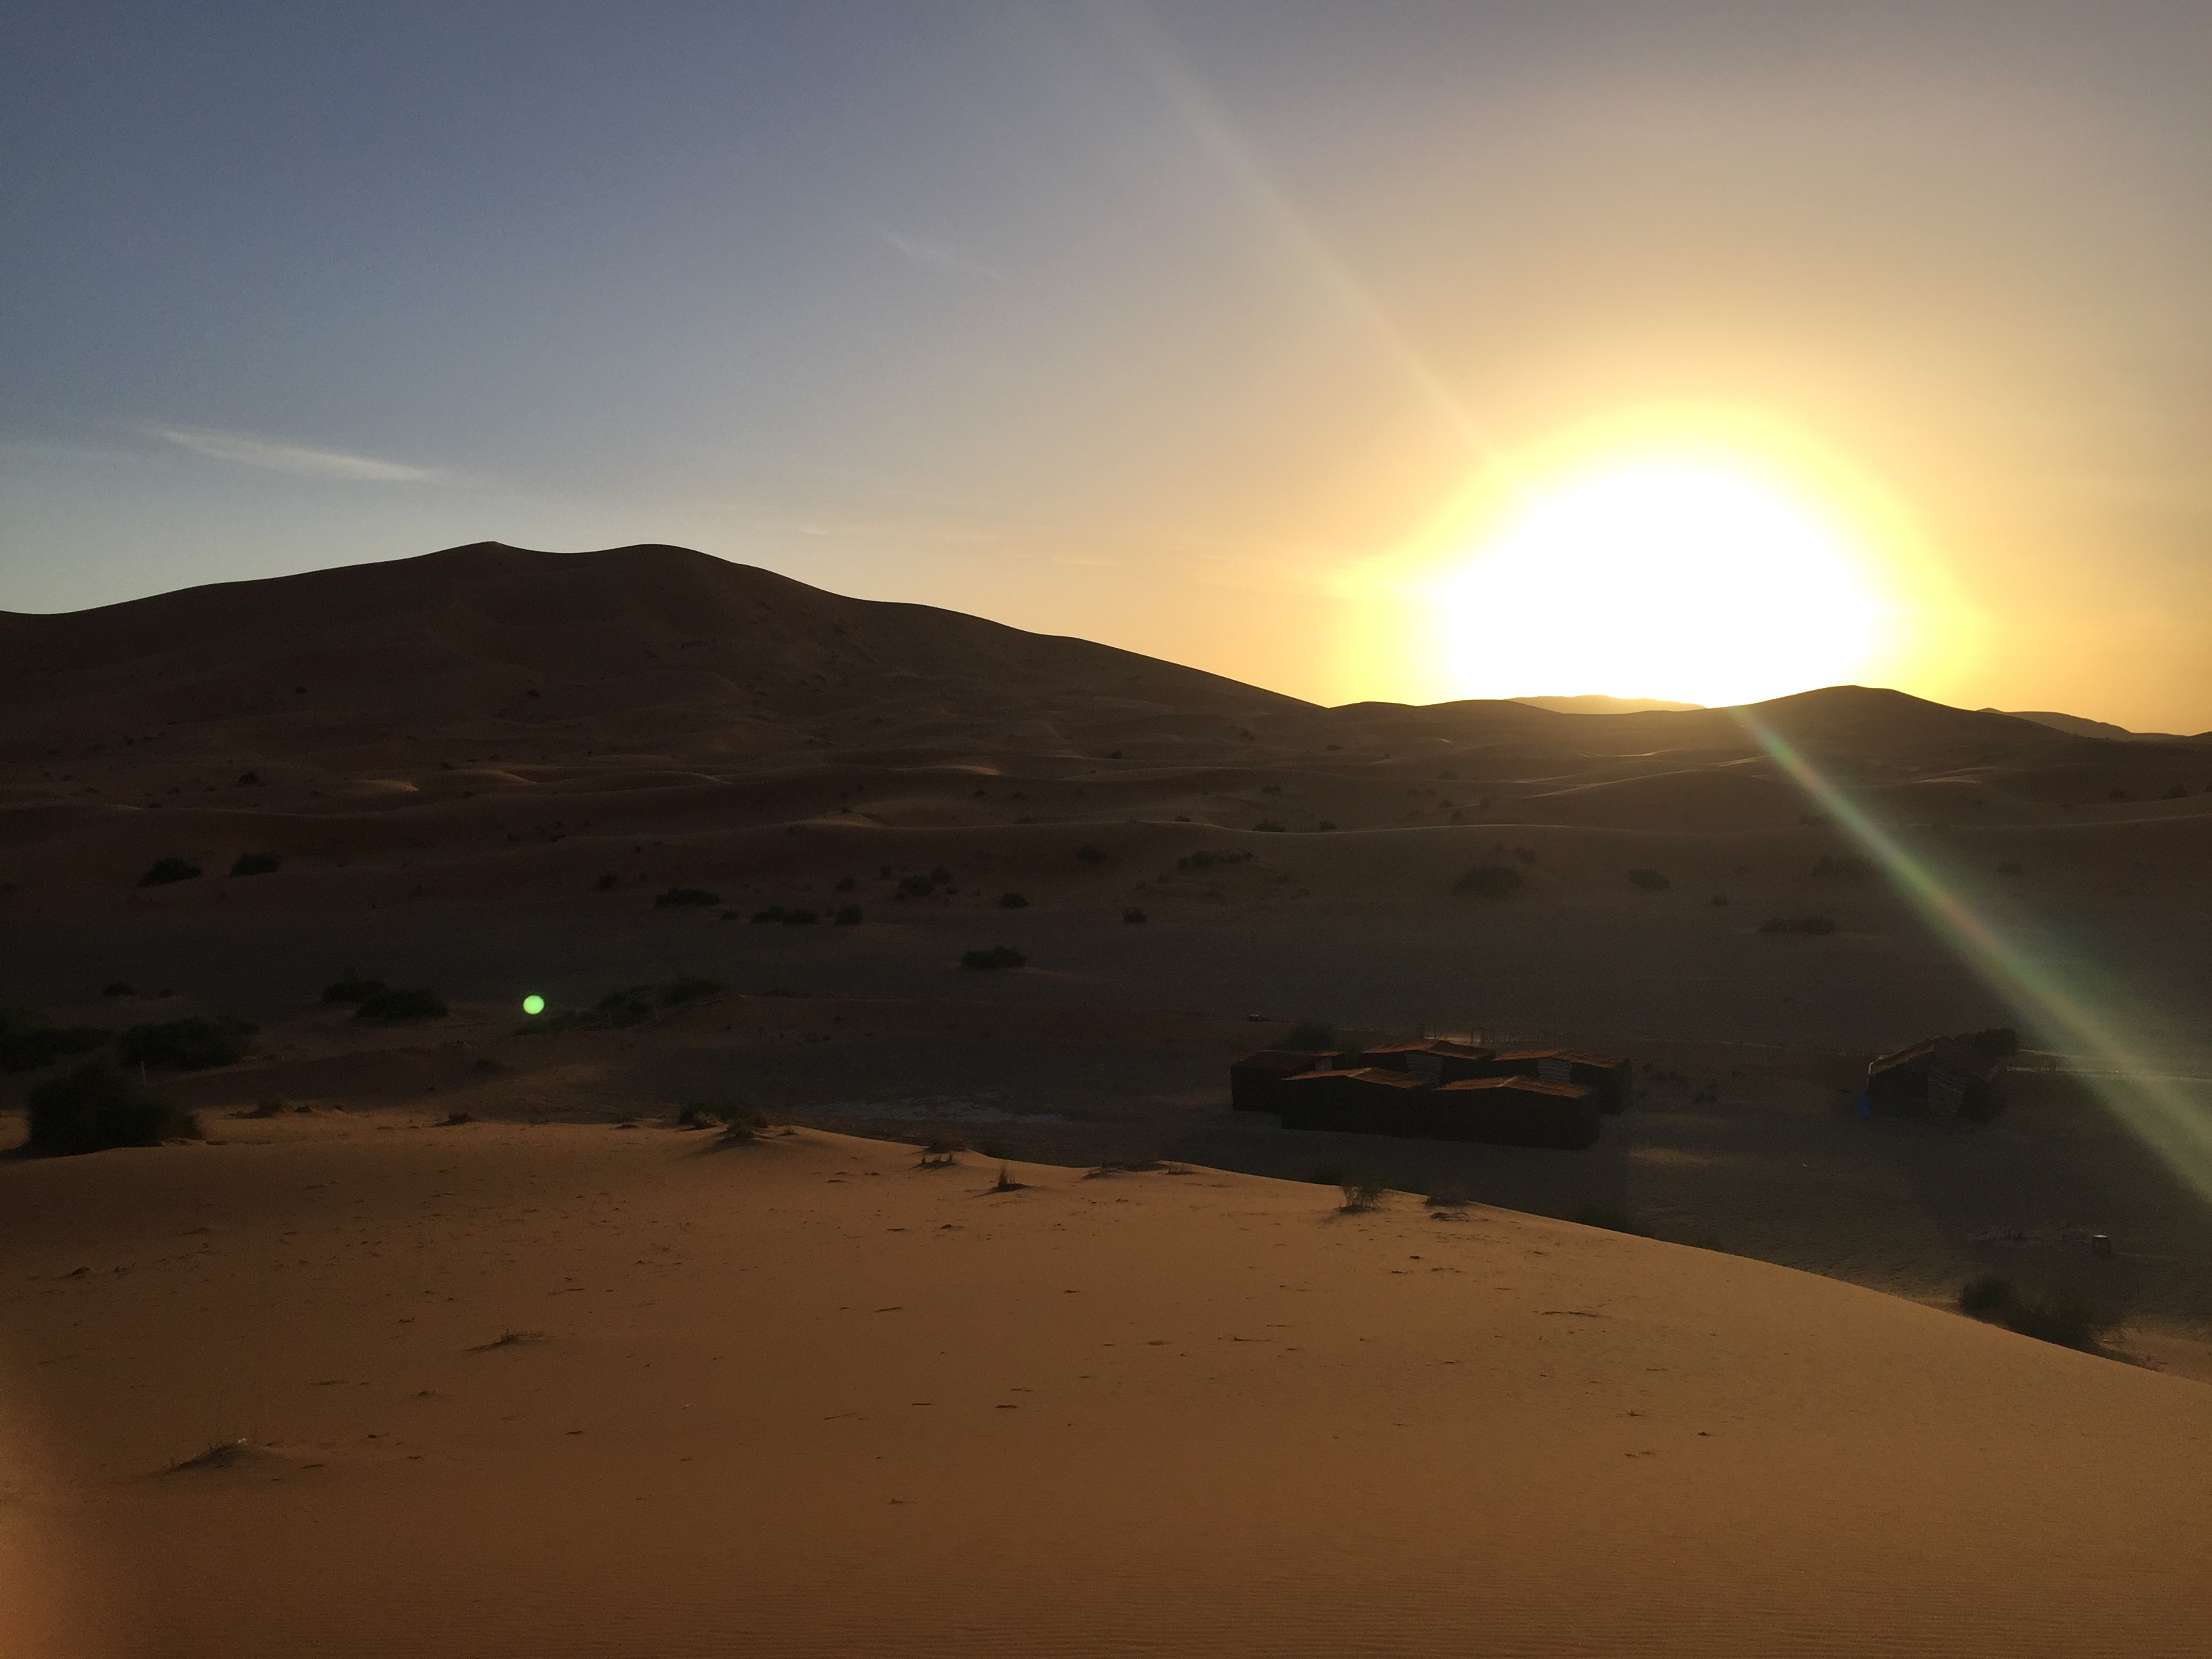 sunrise in sahara desert